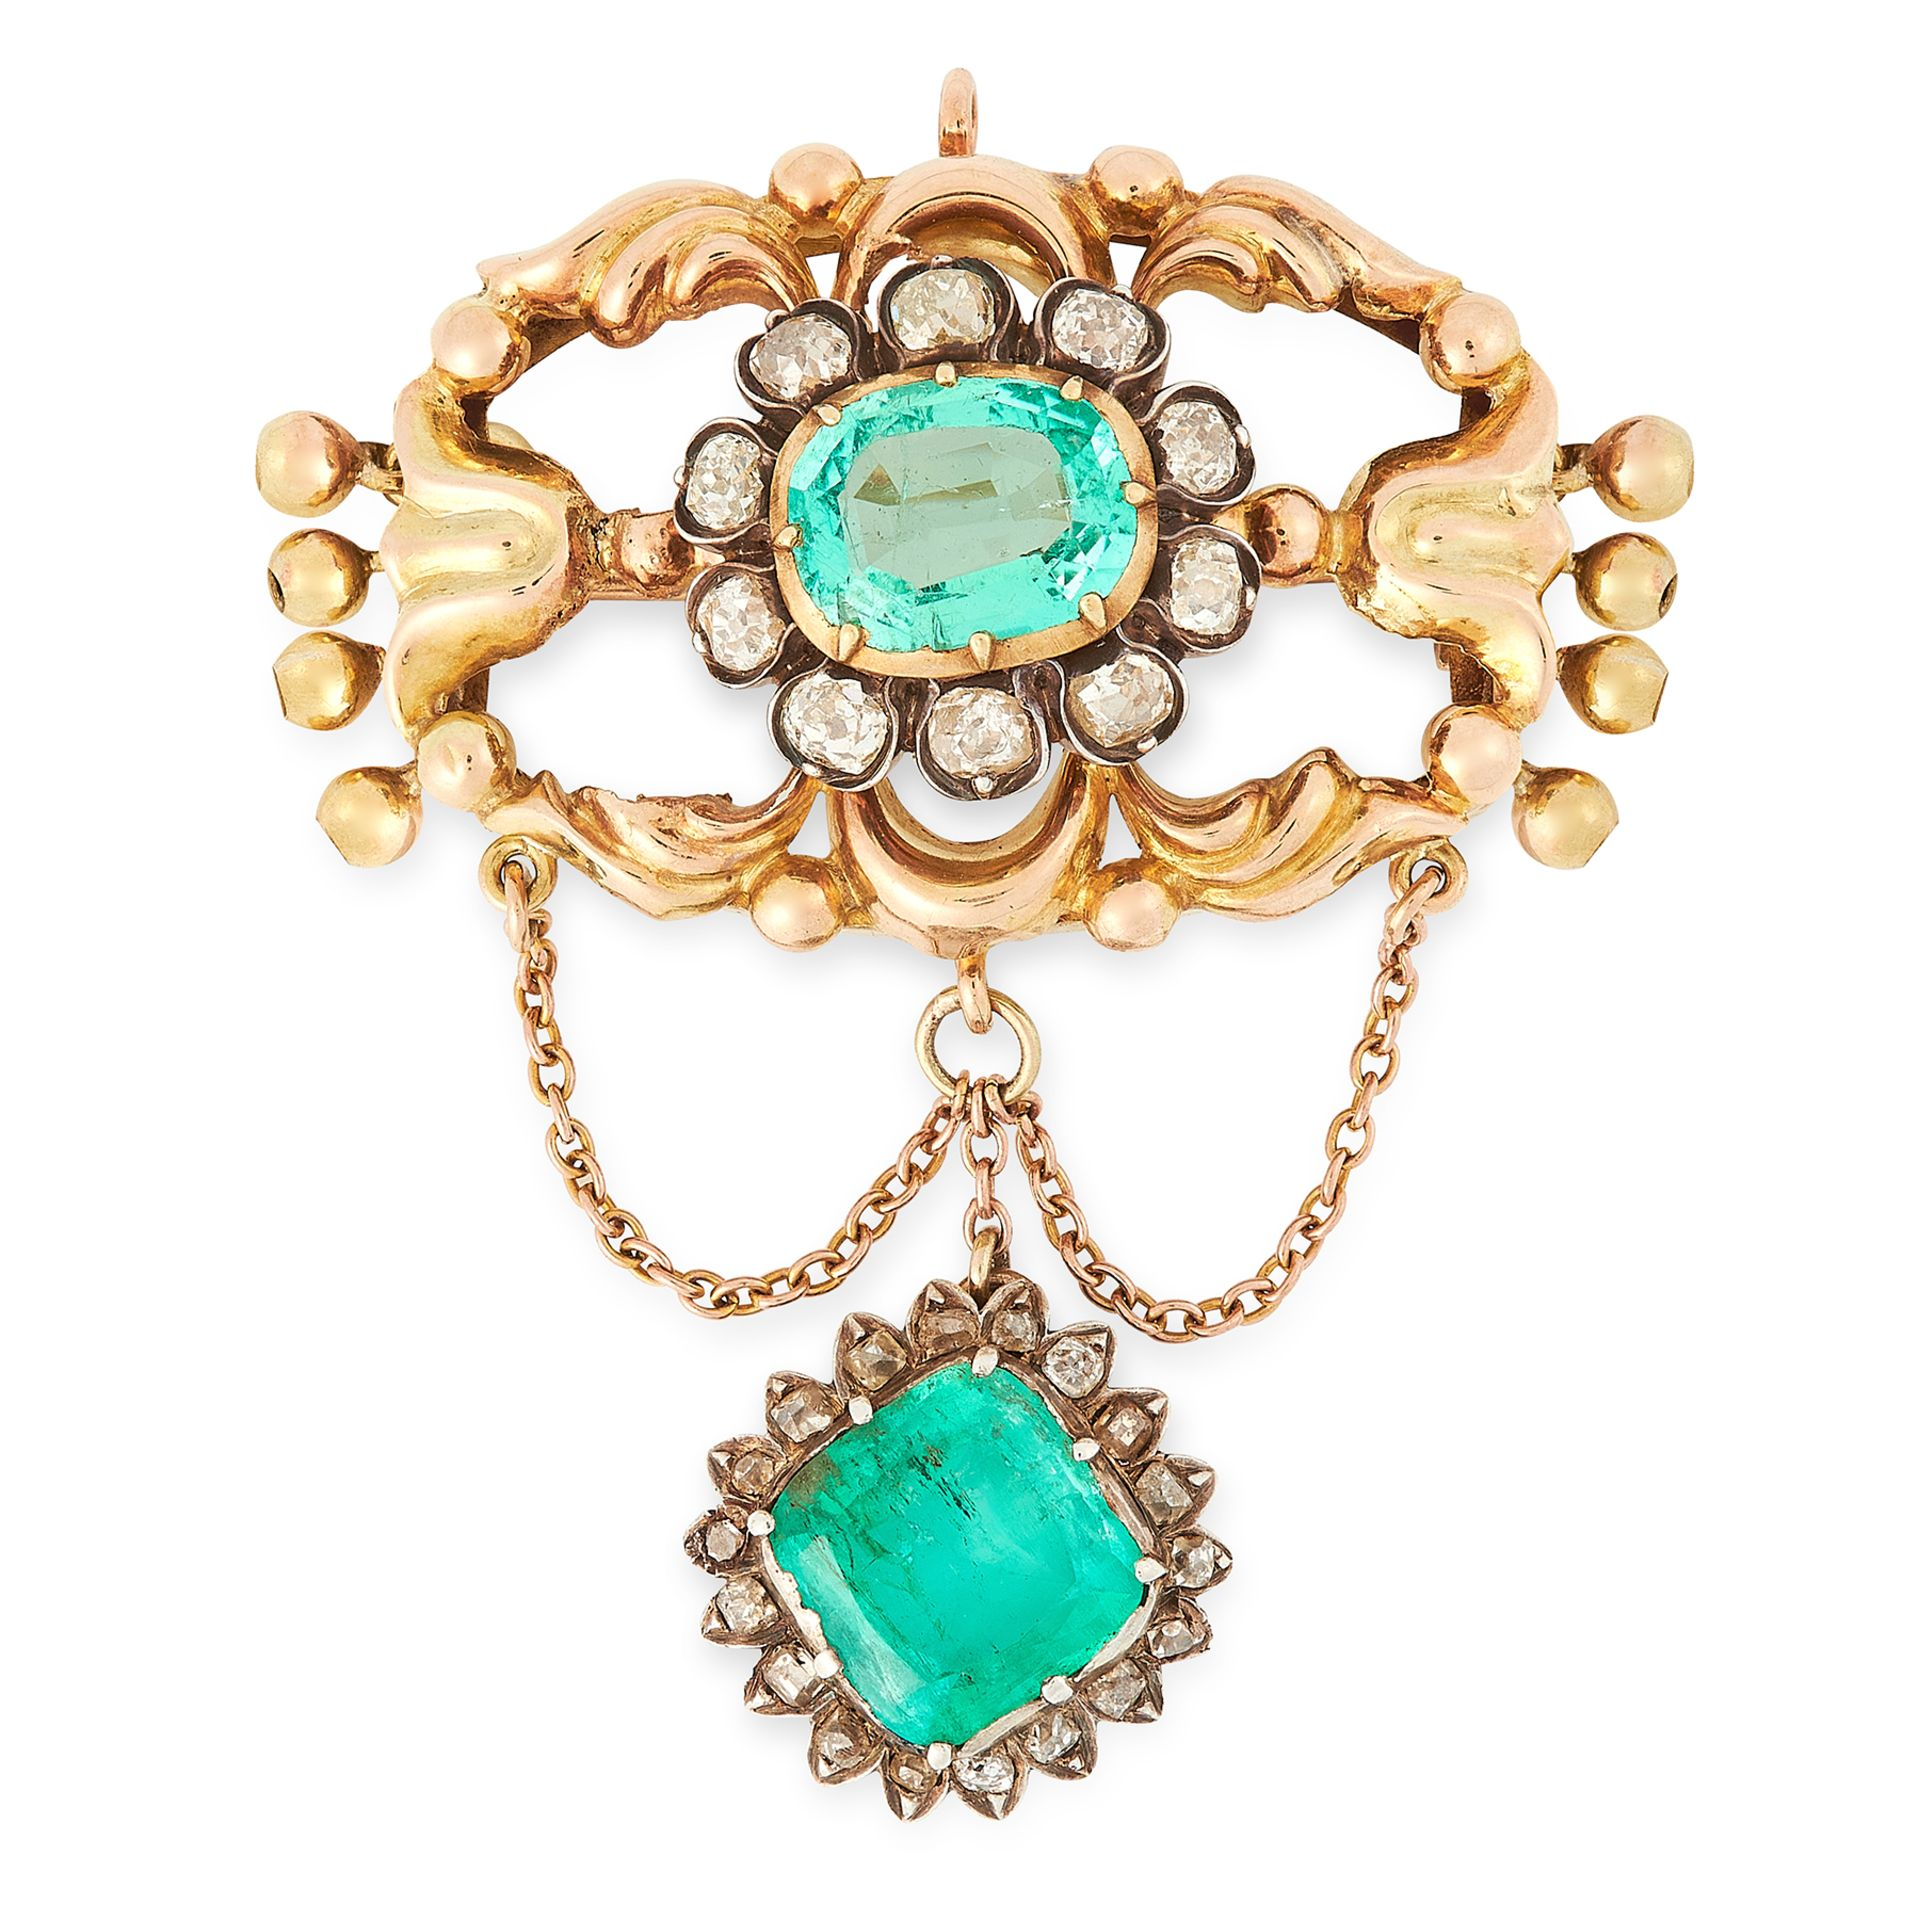 Los 18 - AN ANTIQUE EMERALD AND DIAMOND BROOCH in high carat yellow gold, set with a central oval cut emerald